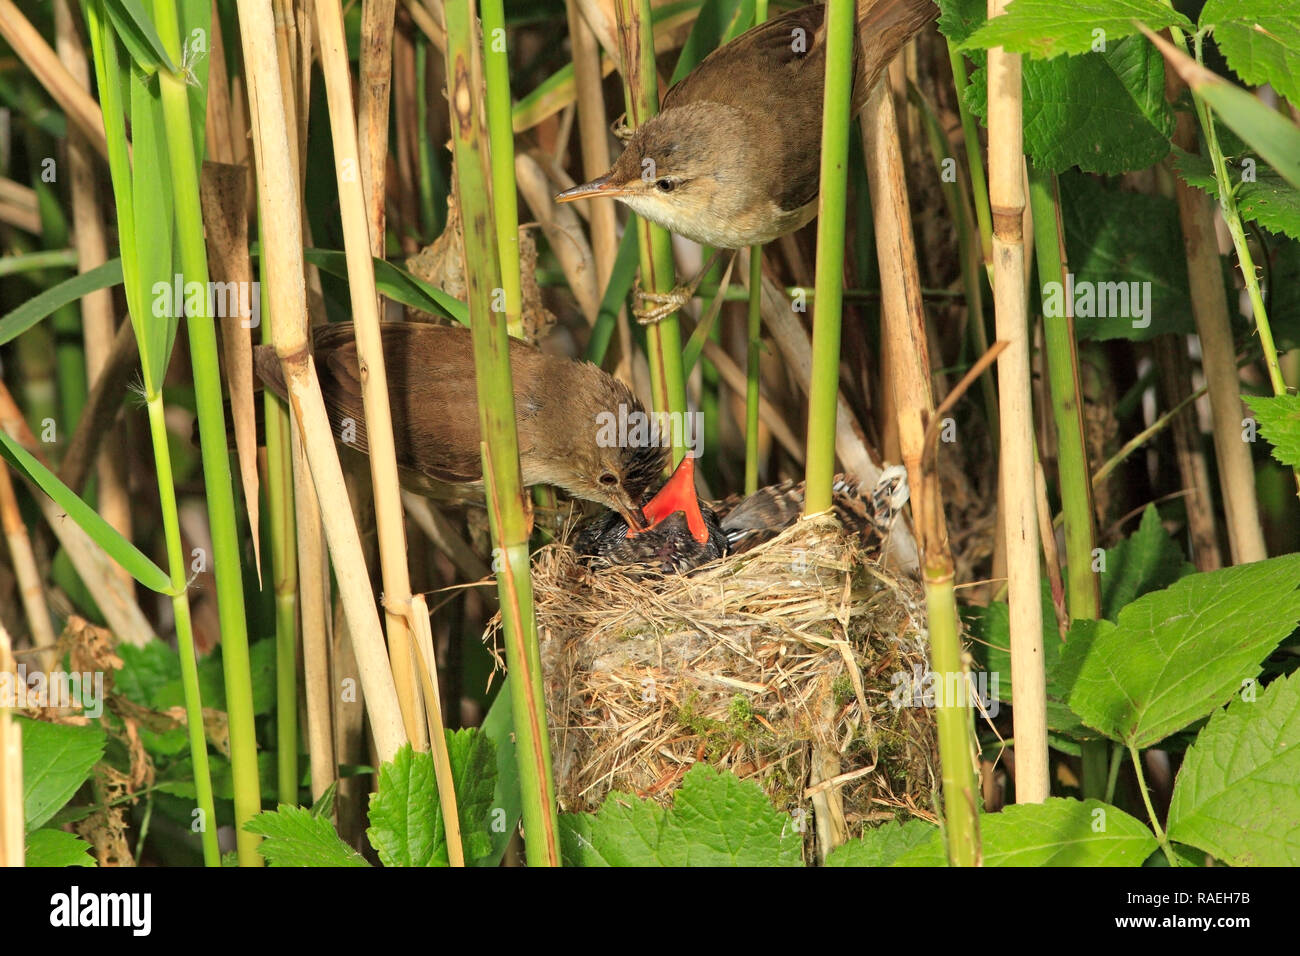 CUCKOO in nest, foster parents present, UK. - Stock Image